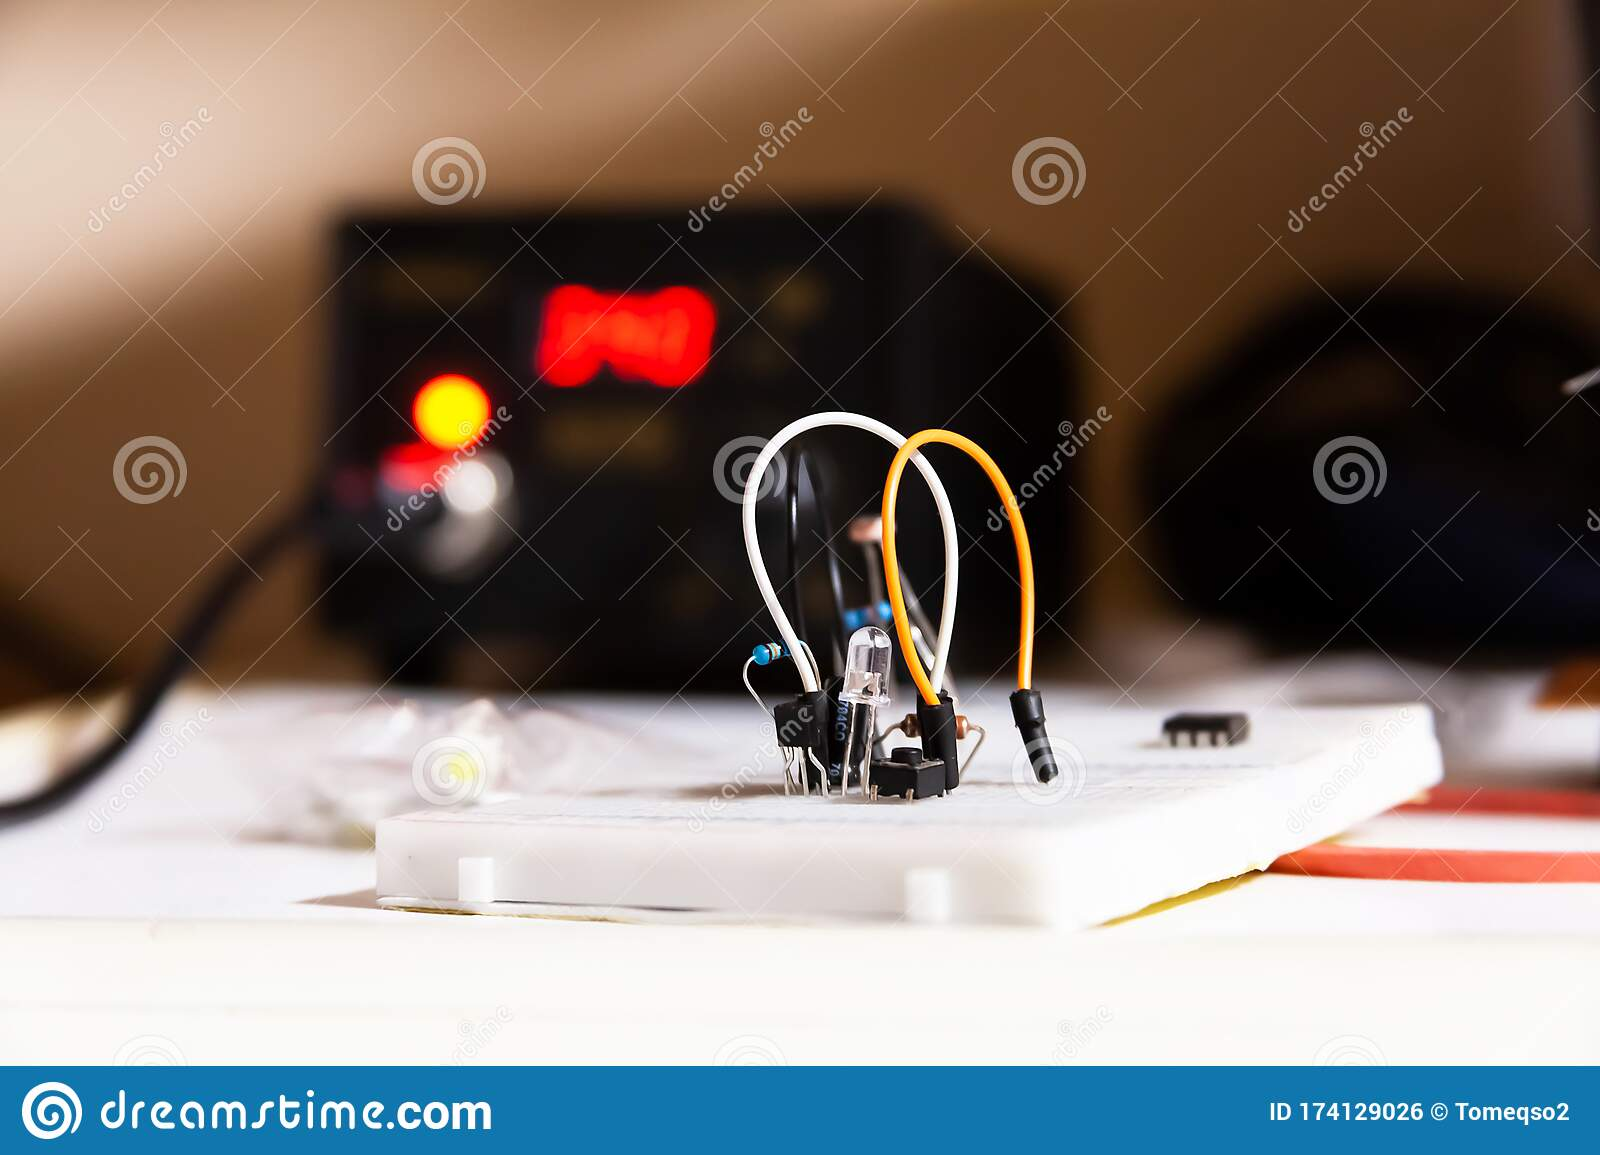 Simple Electric Circuit White Breadboard With Electrical